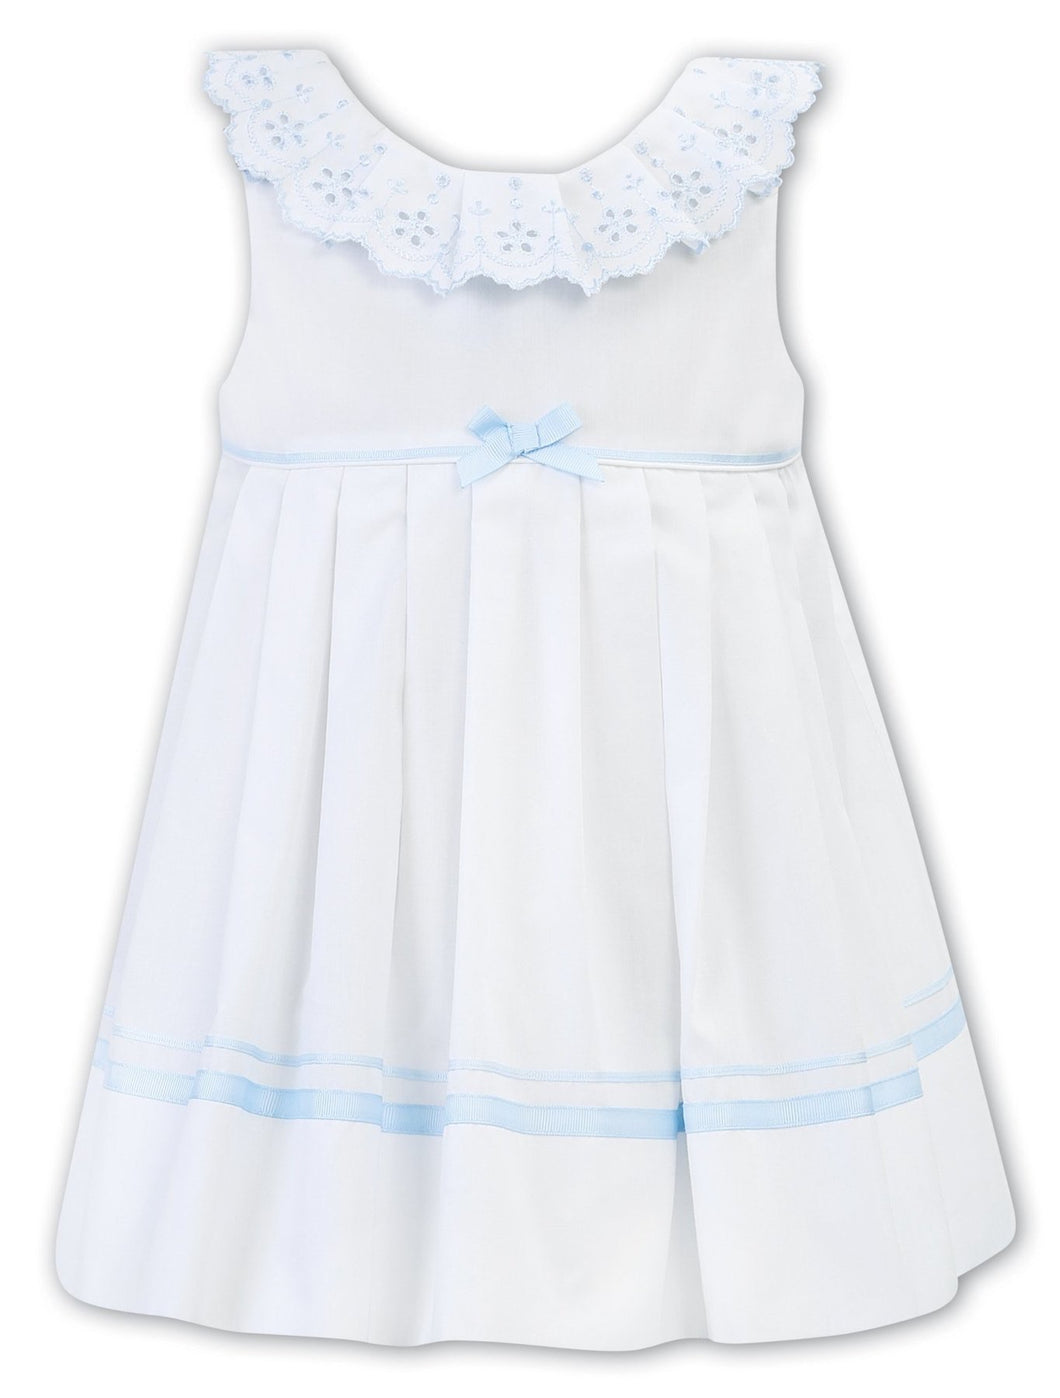 Girls Sleeveless Dress with Embroidered Detailed Frilled Collar, Ribbon and Bow Trim Detail on Waist and Hemline, V Back